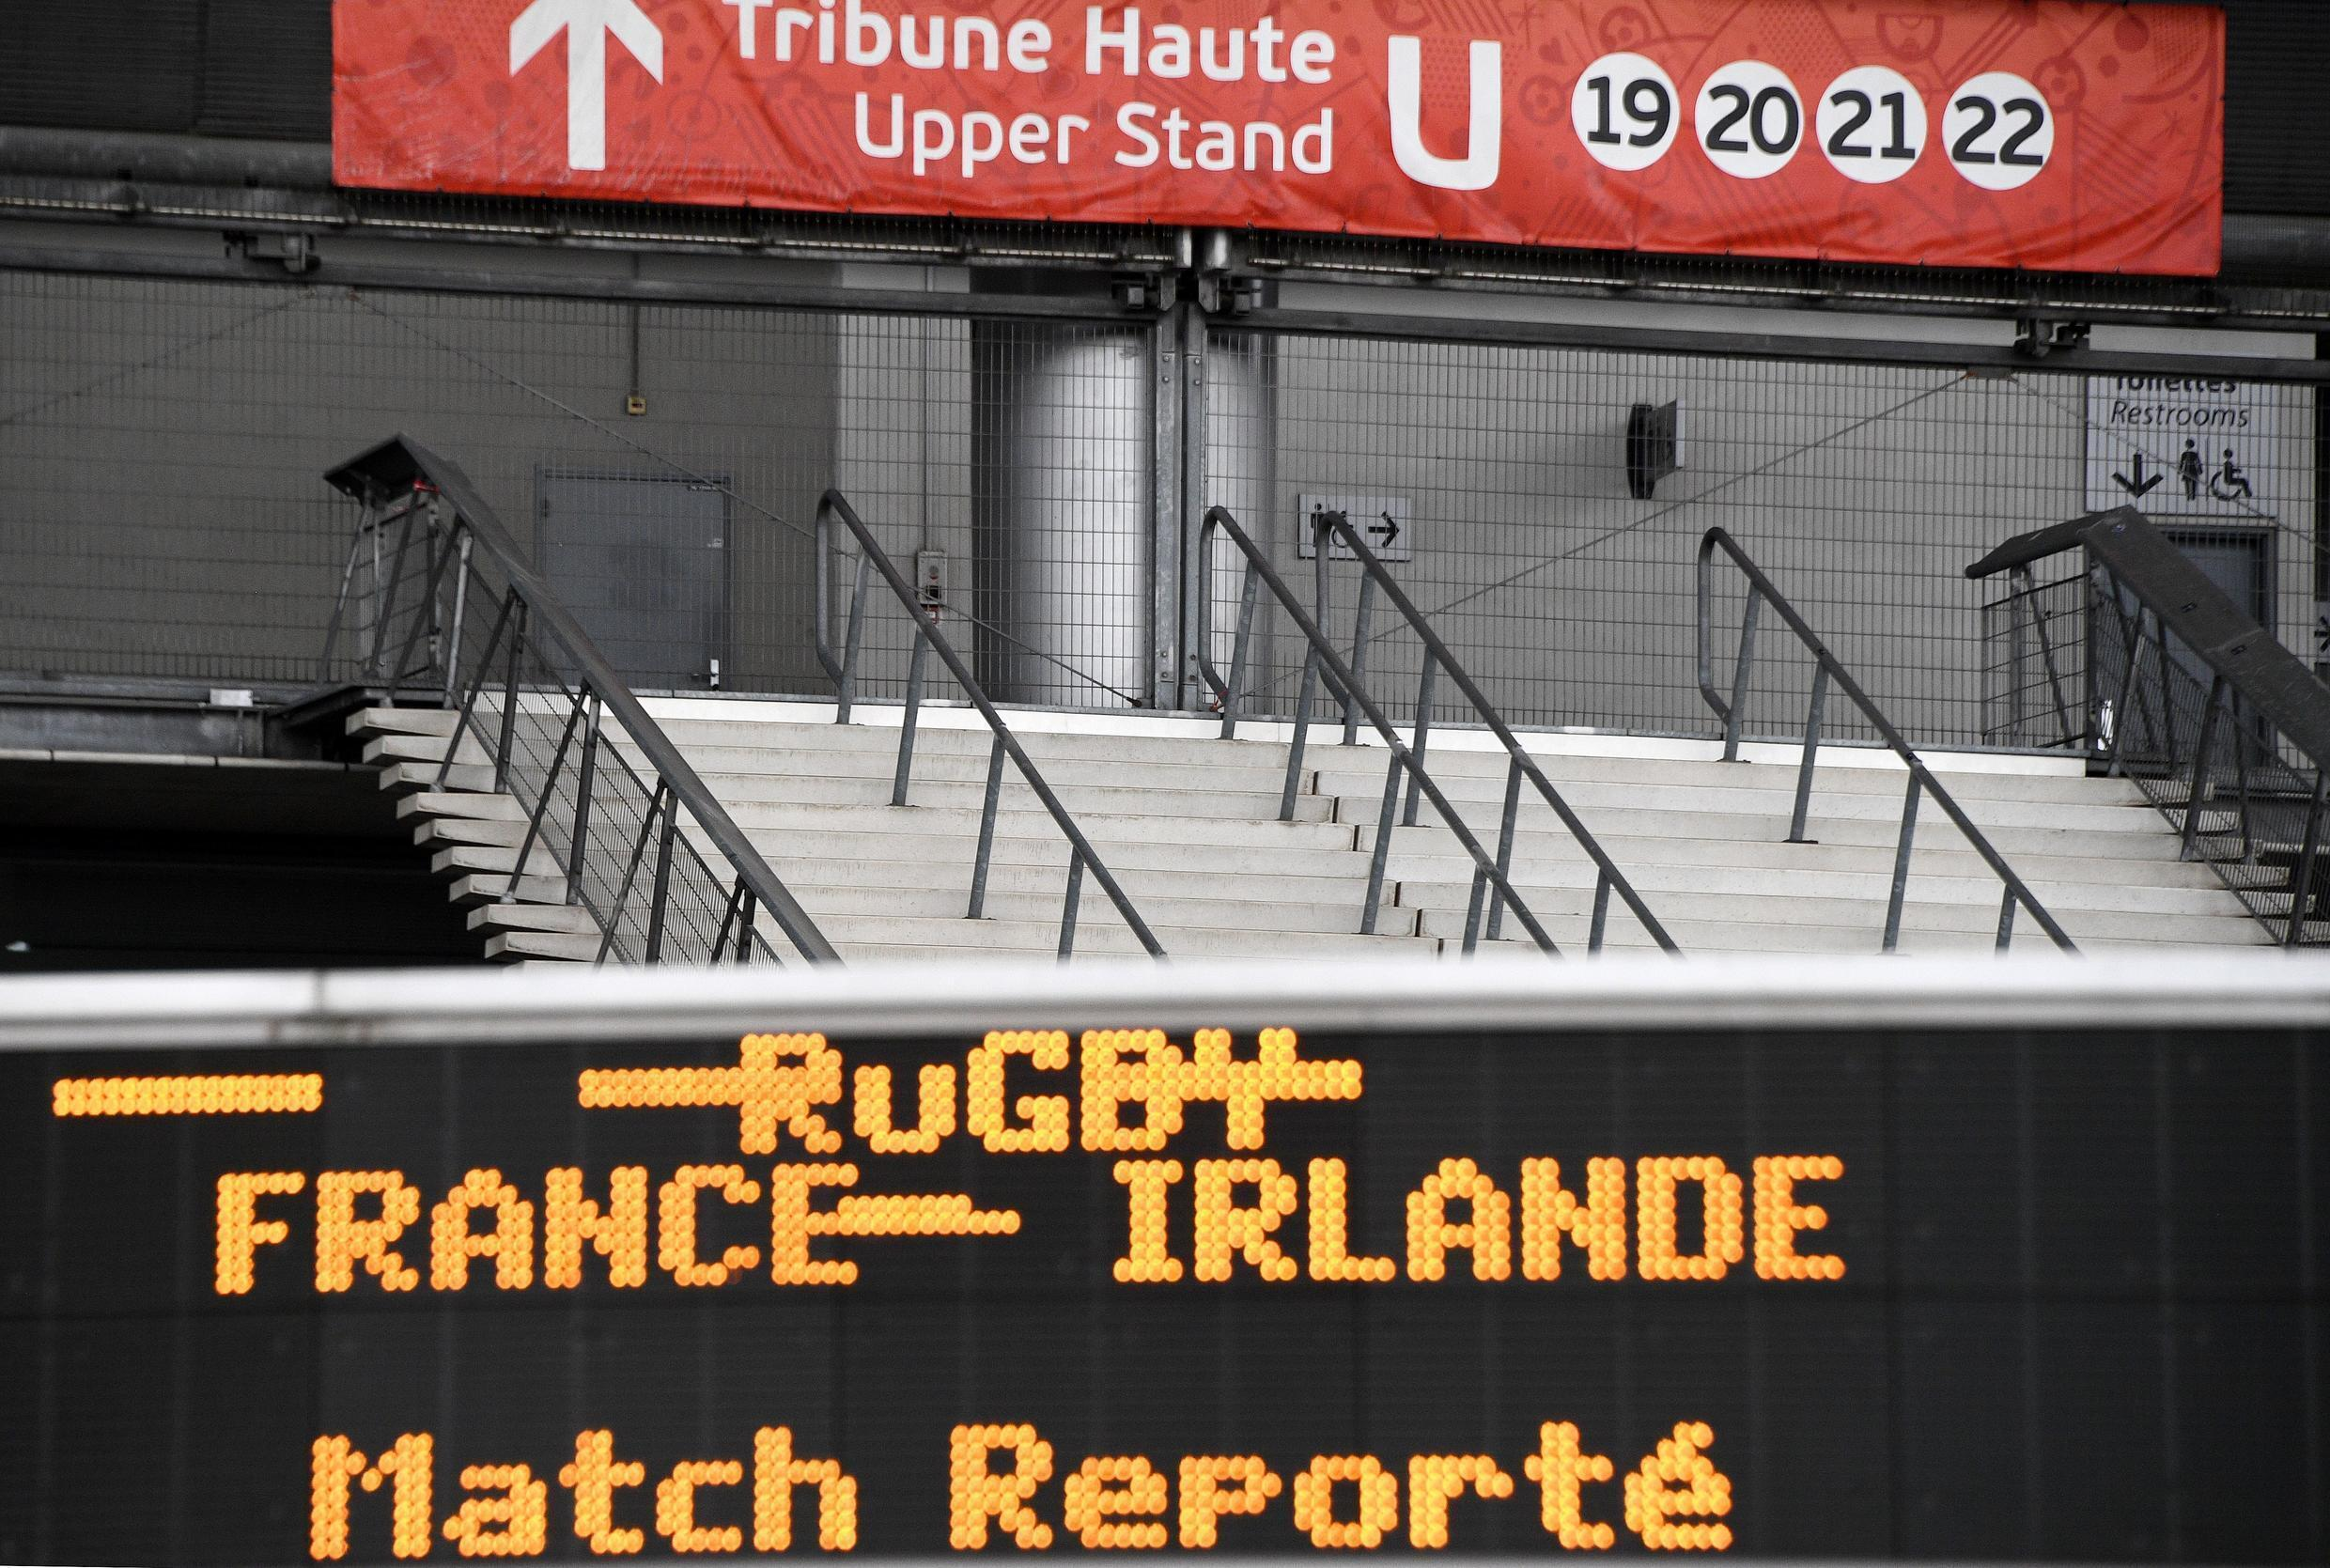 """A photograph taken on March 14, 2020, shows a board reading """"France-Ireland postponed"""" at the entrance to the Stade de France in Saint Denis. This weekend's Six Nations international was postponed due to the coronavirus outbreak."""